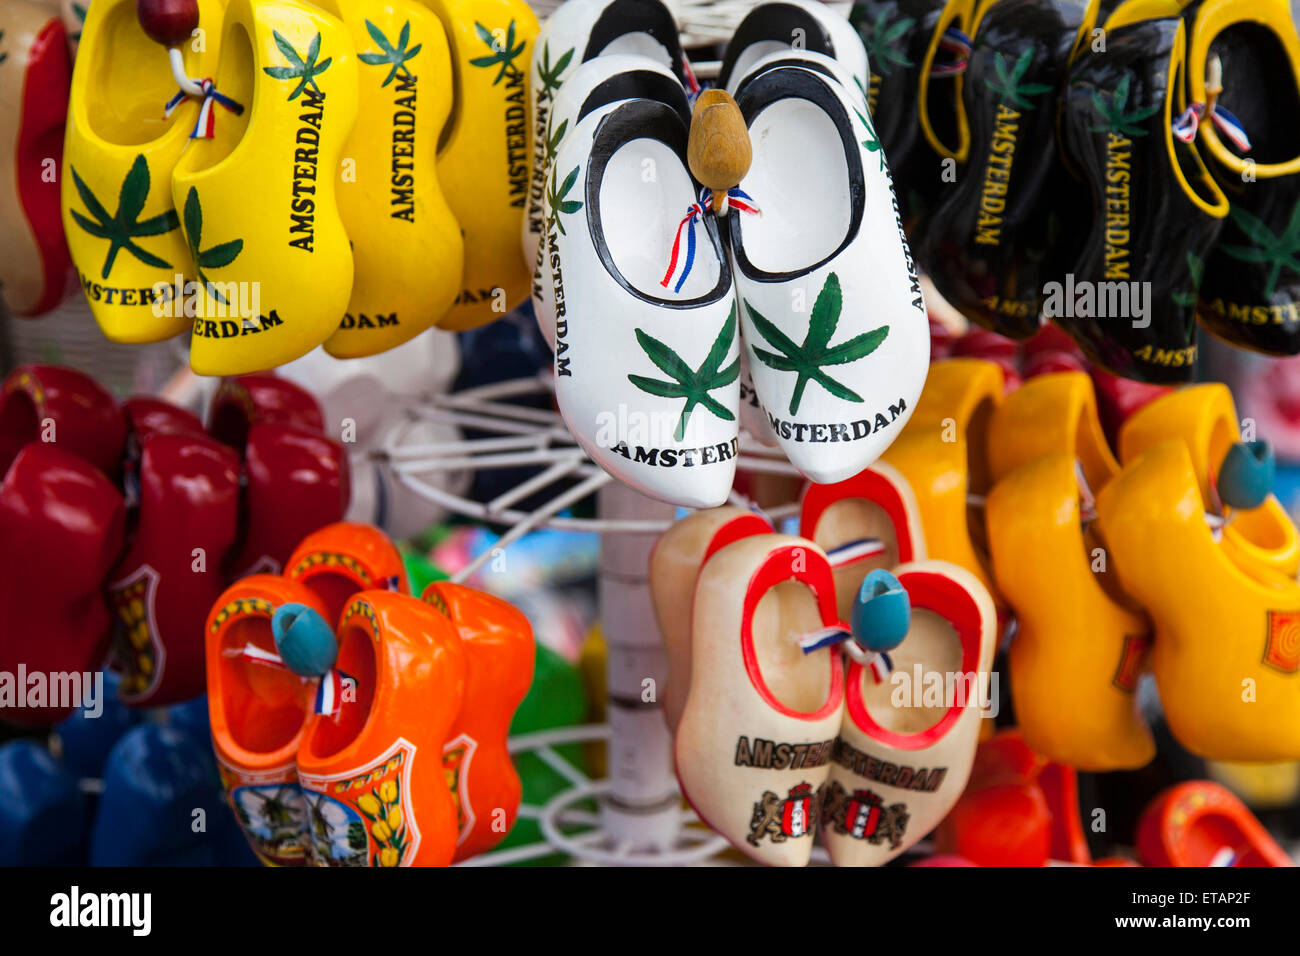 Wooden Shoes In Many Colors For Sale In Amsterdam Souvenir Shop